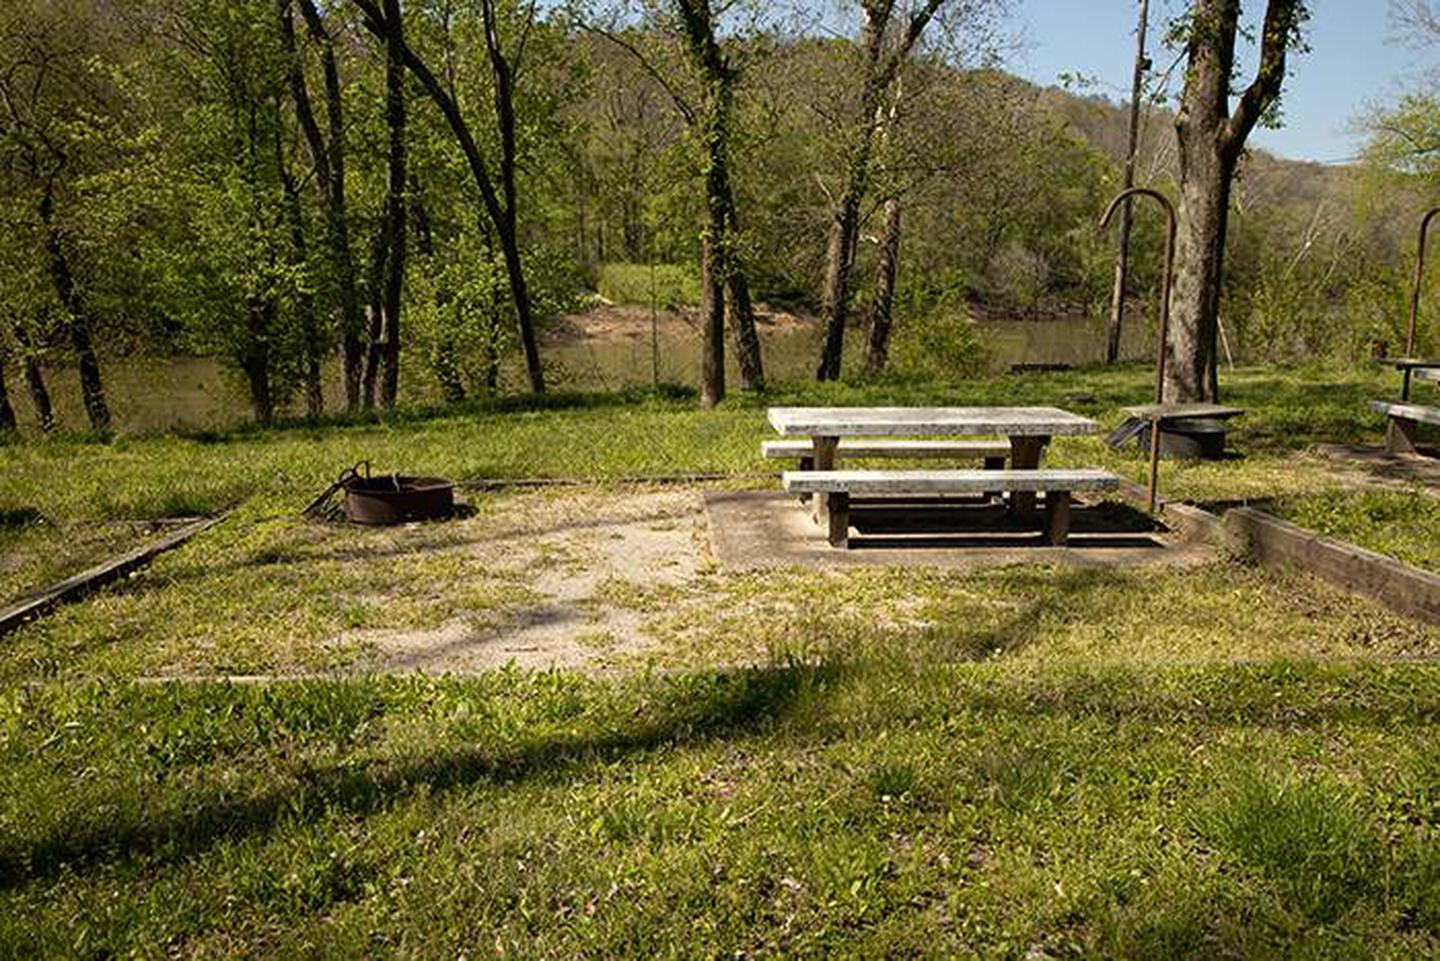 Campsite 3, located with a view of the Green River the campsite has a picnic table and fire ring. Campsite 3, located with a view of the Green River the campsite has a picnic table and fire ring.